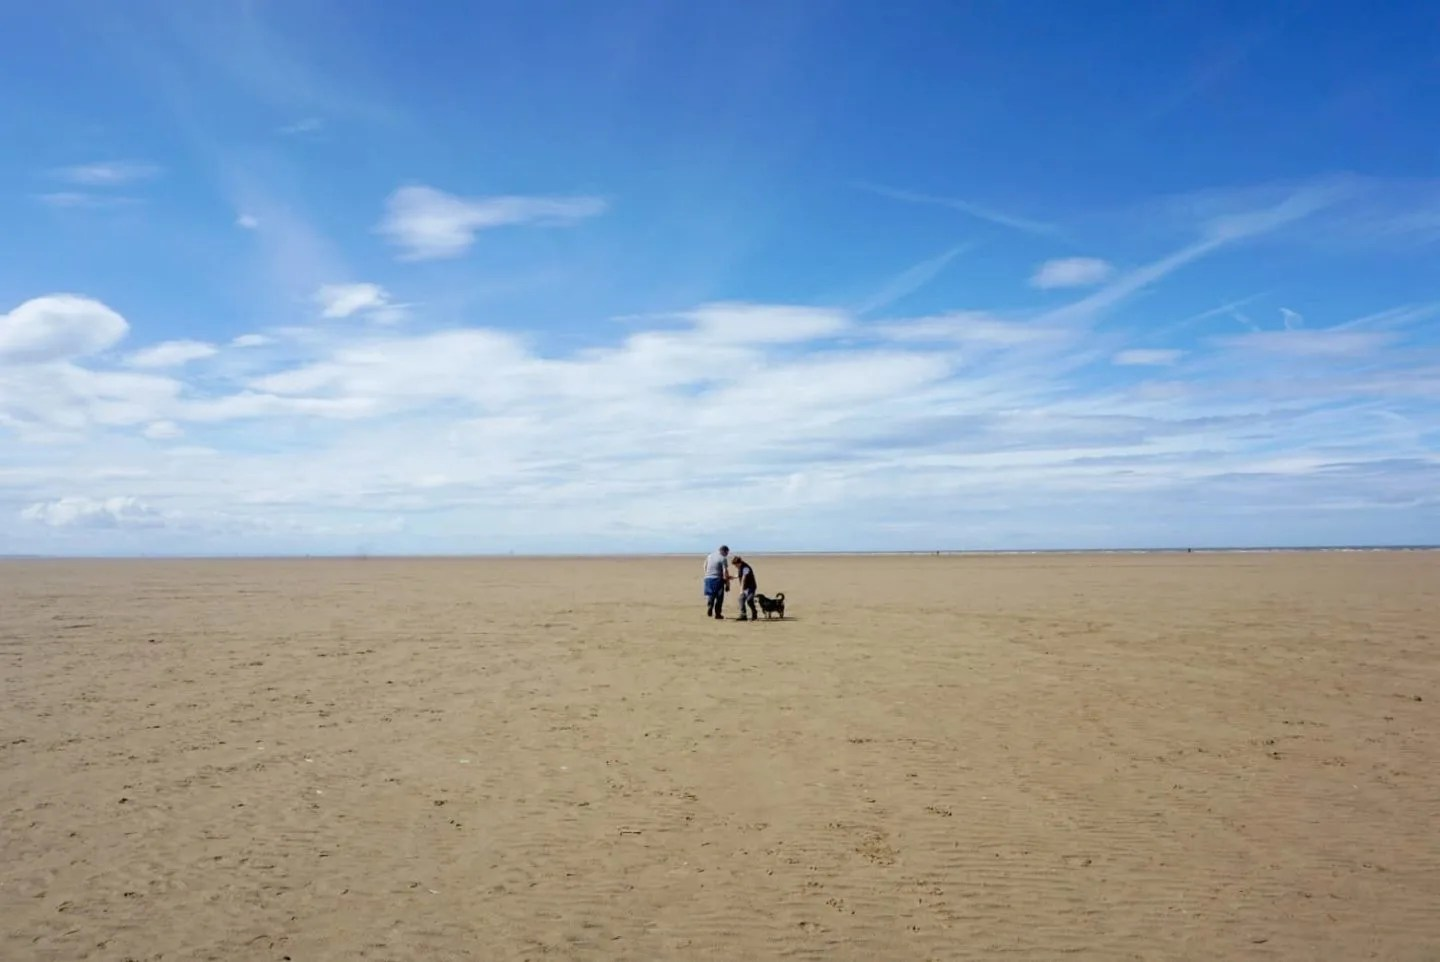 A walk on the beach At St Annes www.extraordinarychaos.com